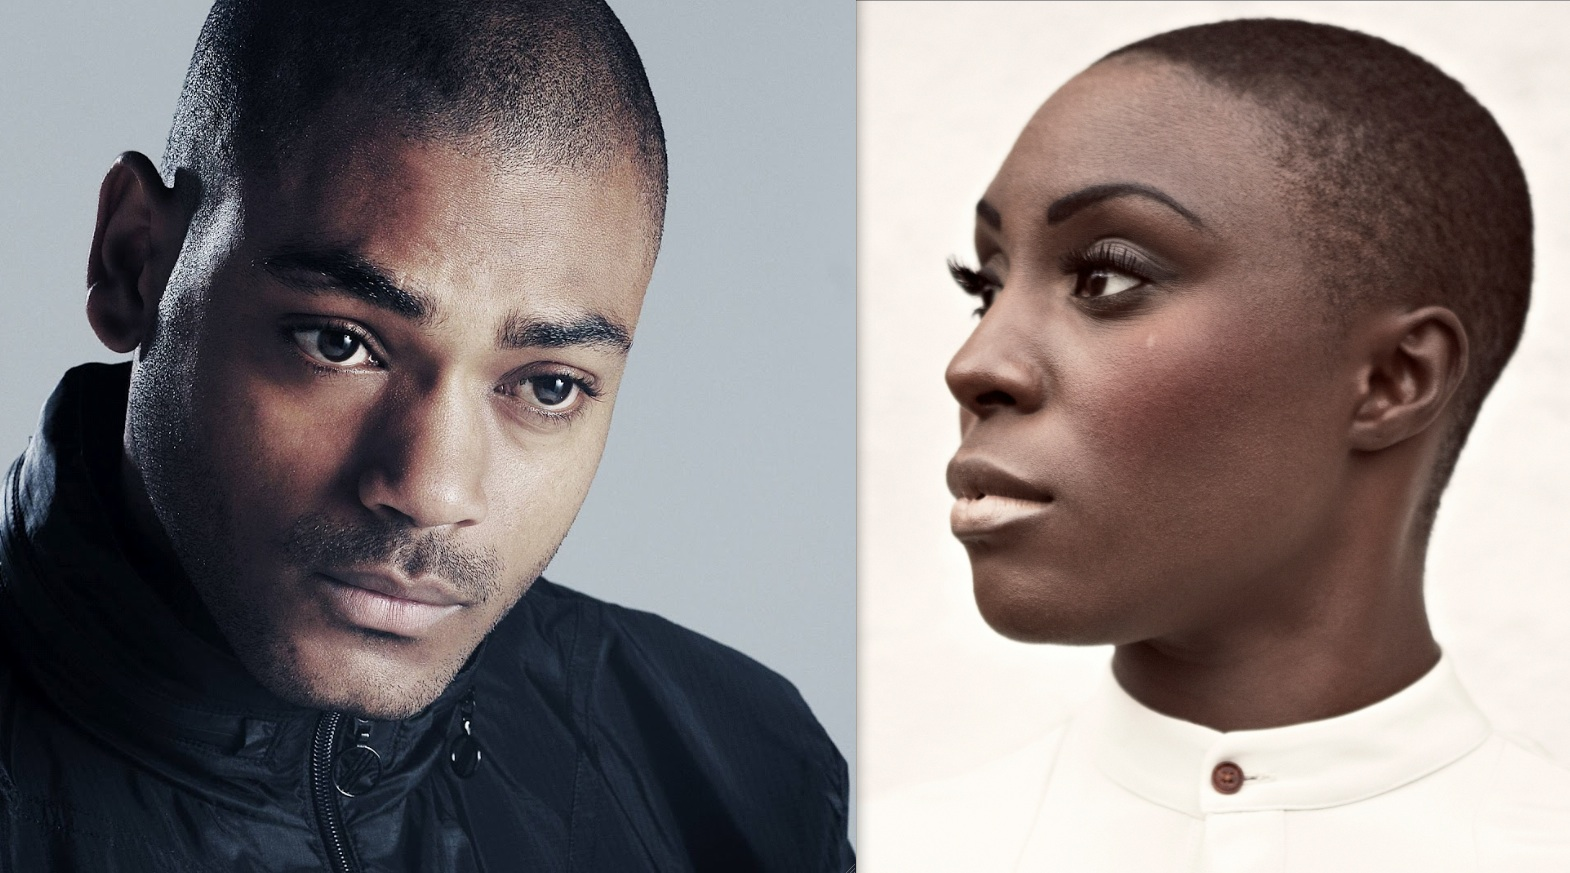 Laura Mvula and Kano lead the pack with 4 MOBO nominations